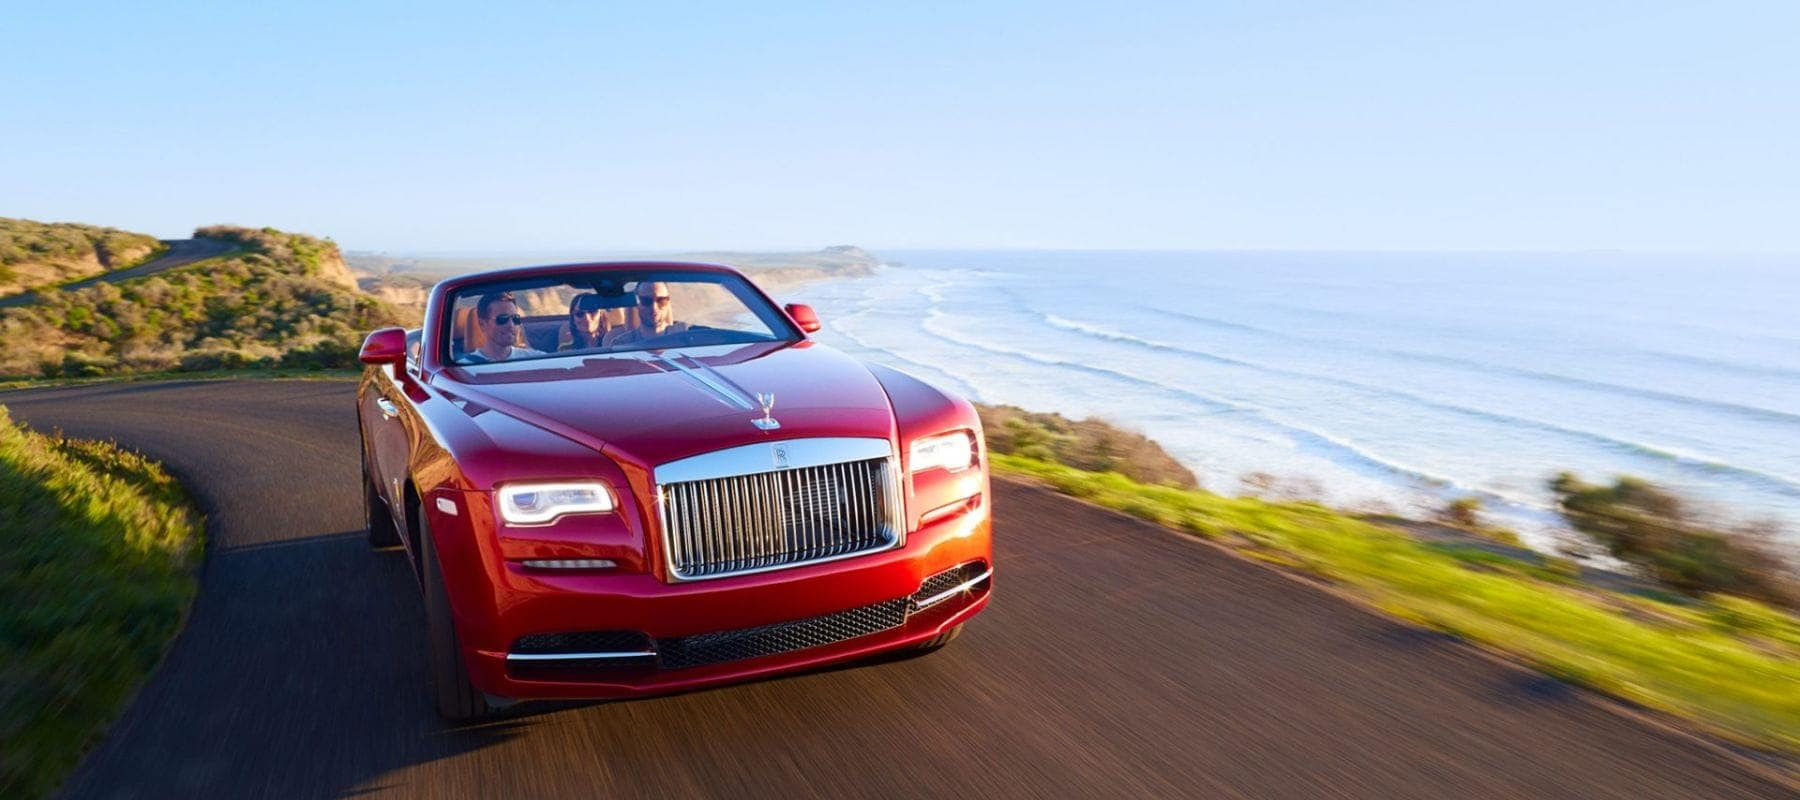 A Rolls-Royce Dawn driving down a road with an ocean view on the background